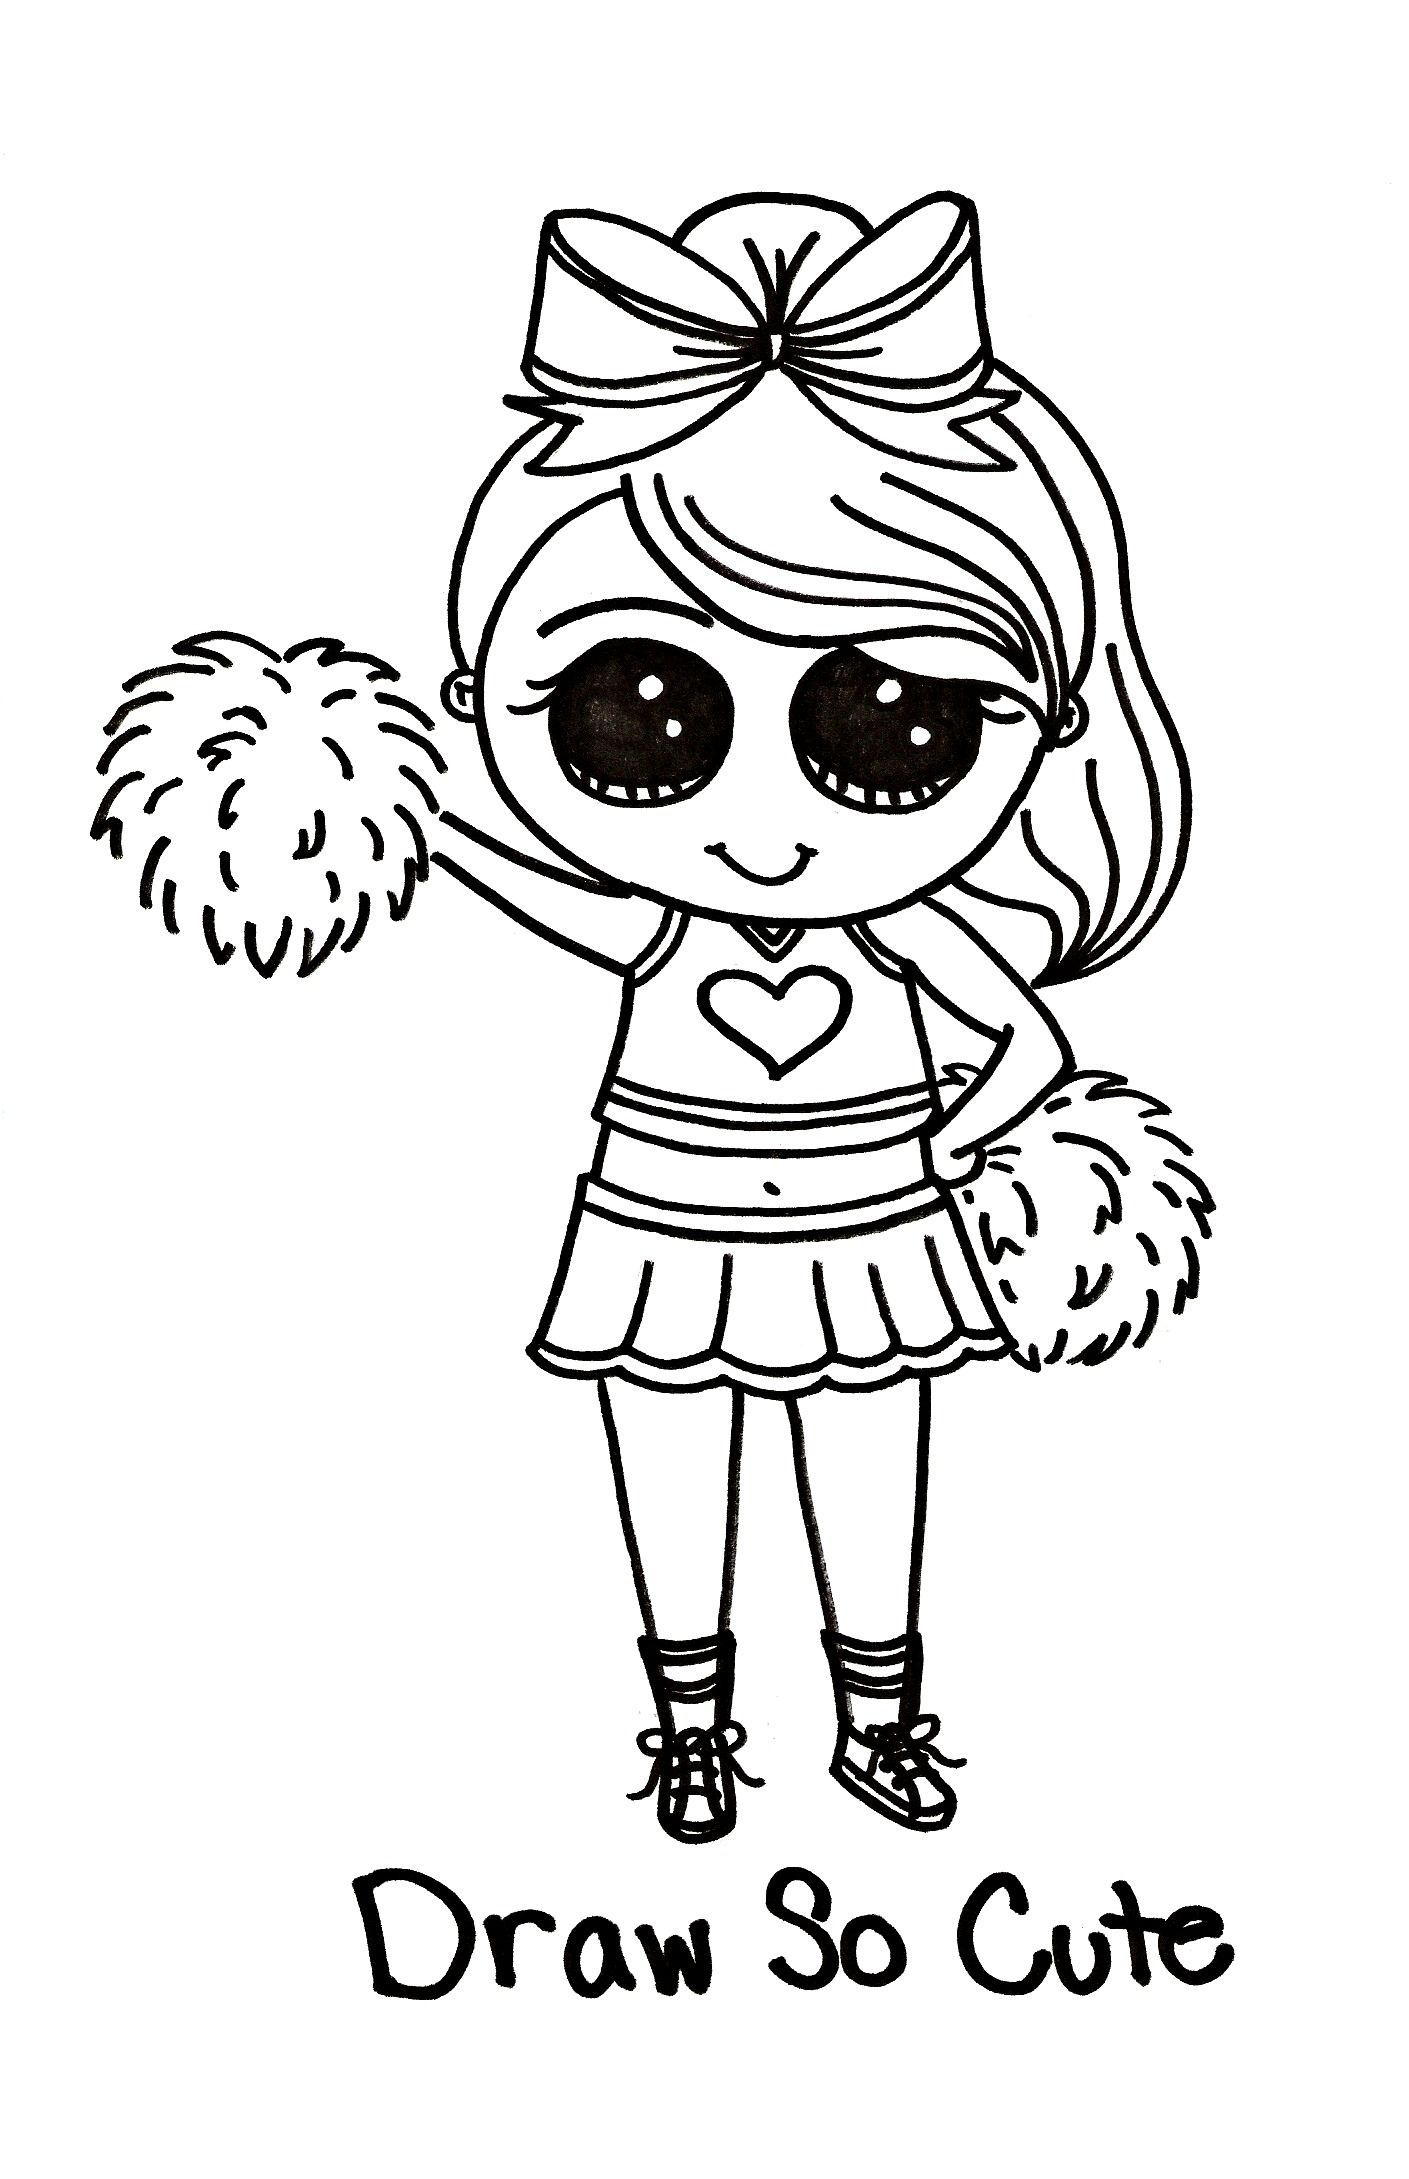 Cute Unicorn Girl Coloring Pages | Super Duper Coloring